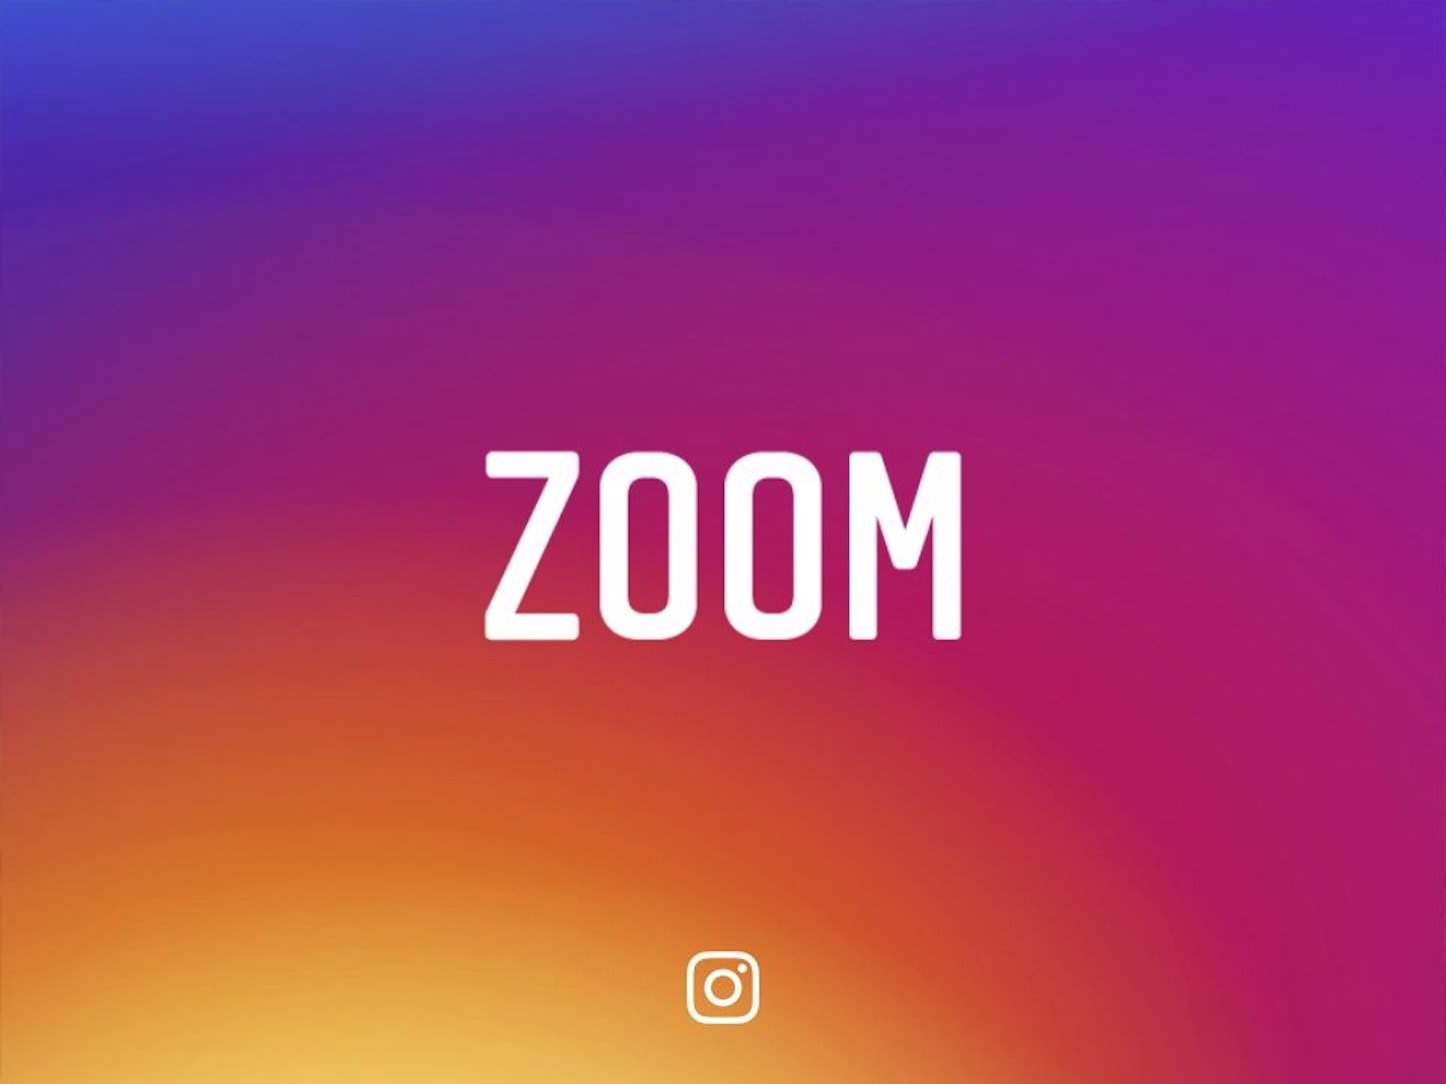 Instagram zoom is now capable